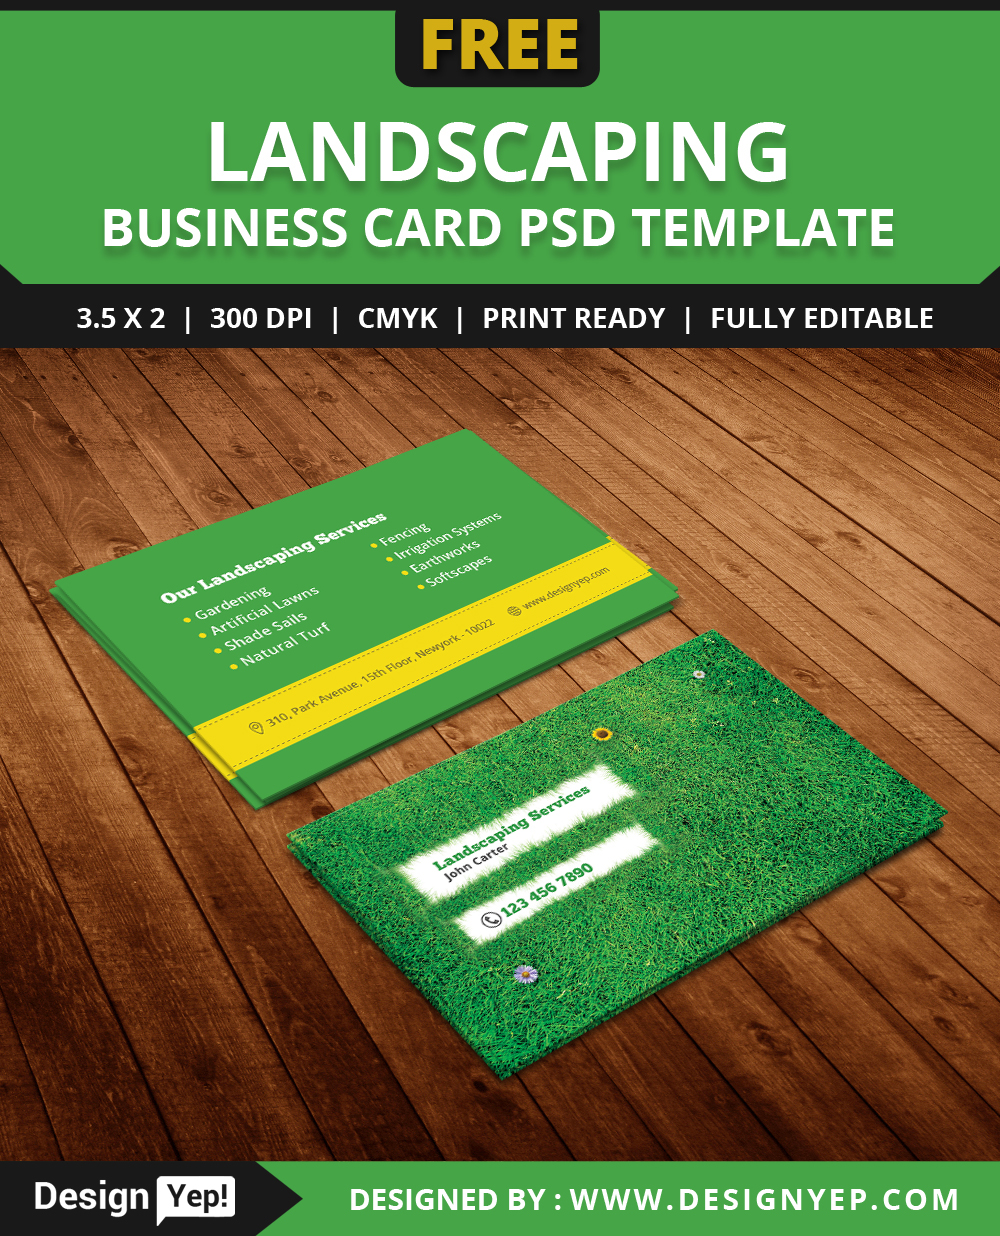 Free Landscaping Business Card Template PSD on Behance